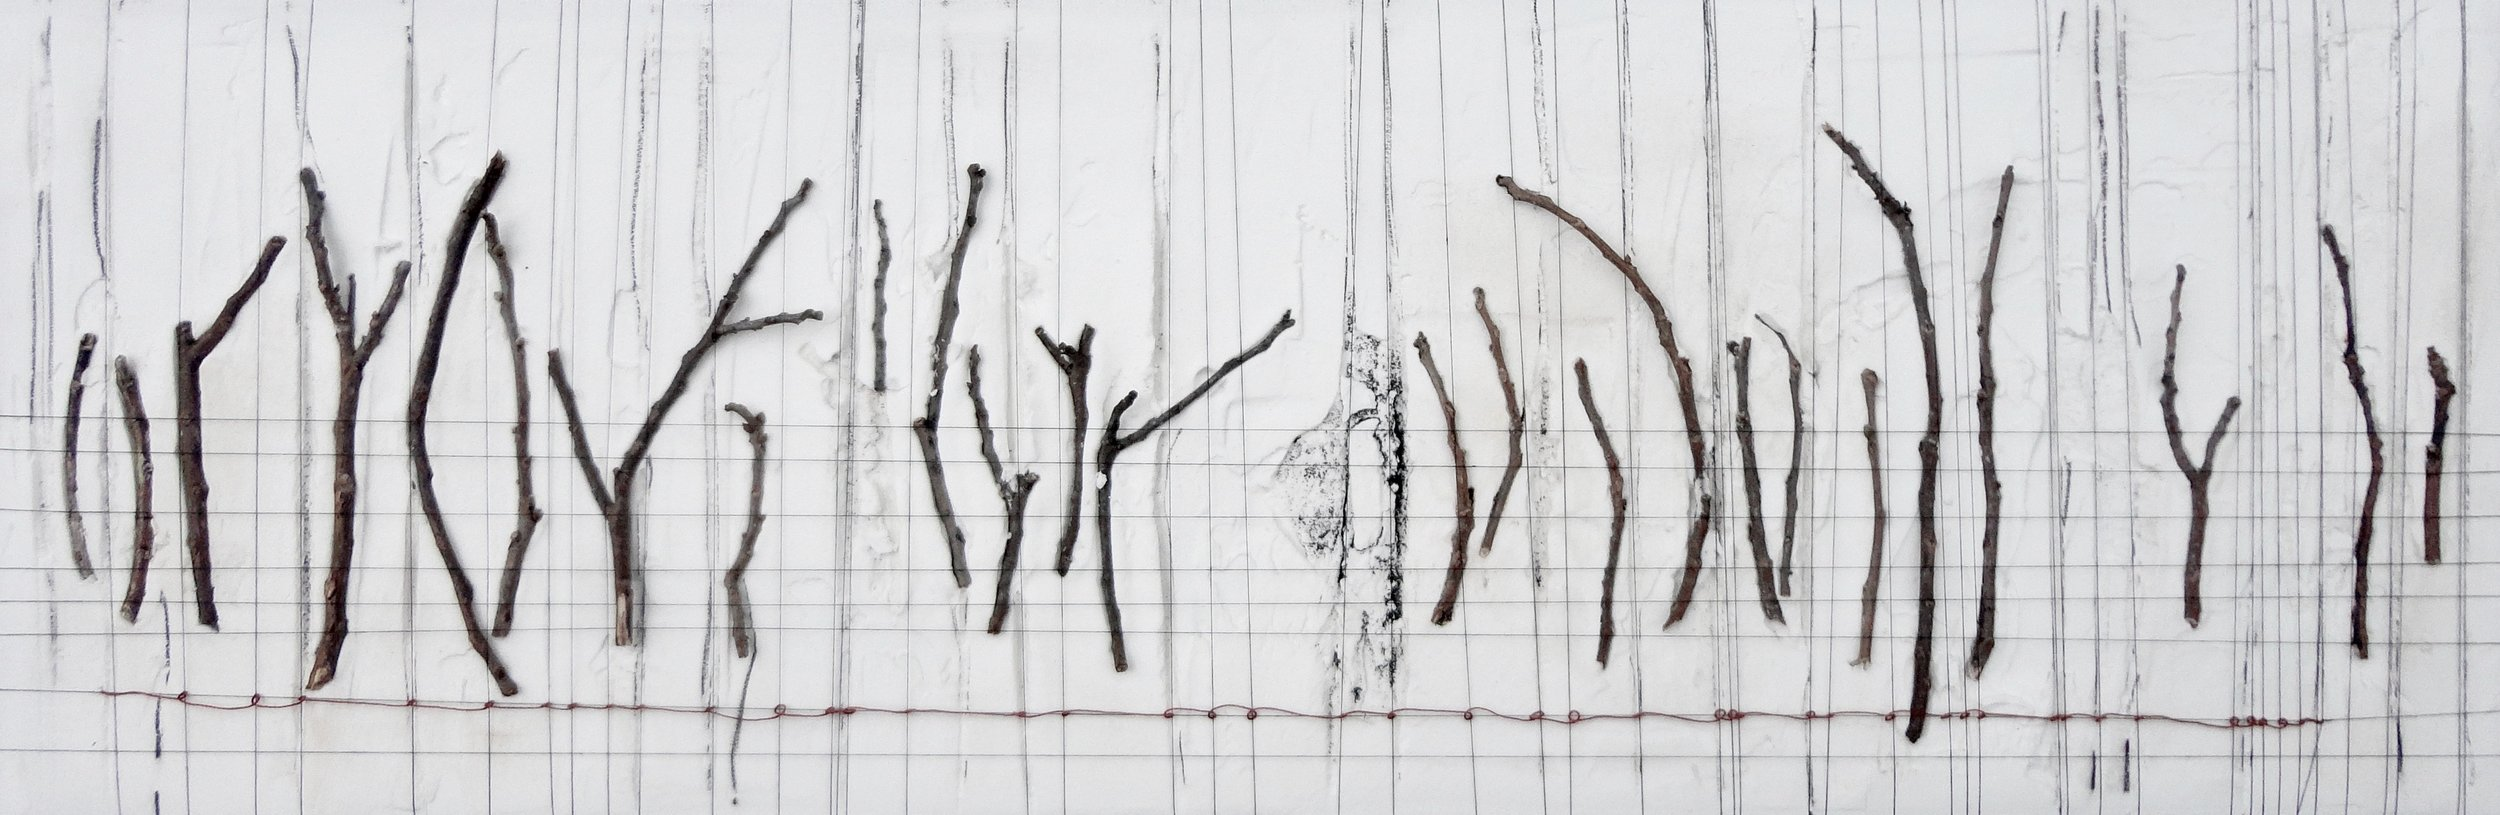 Untitled (Sticks)